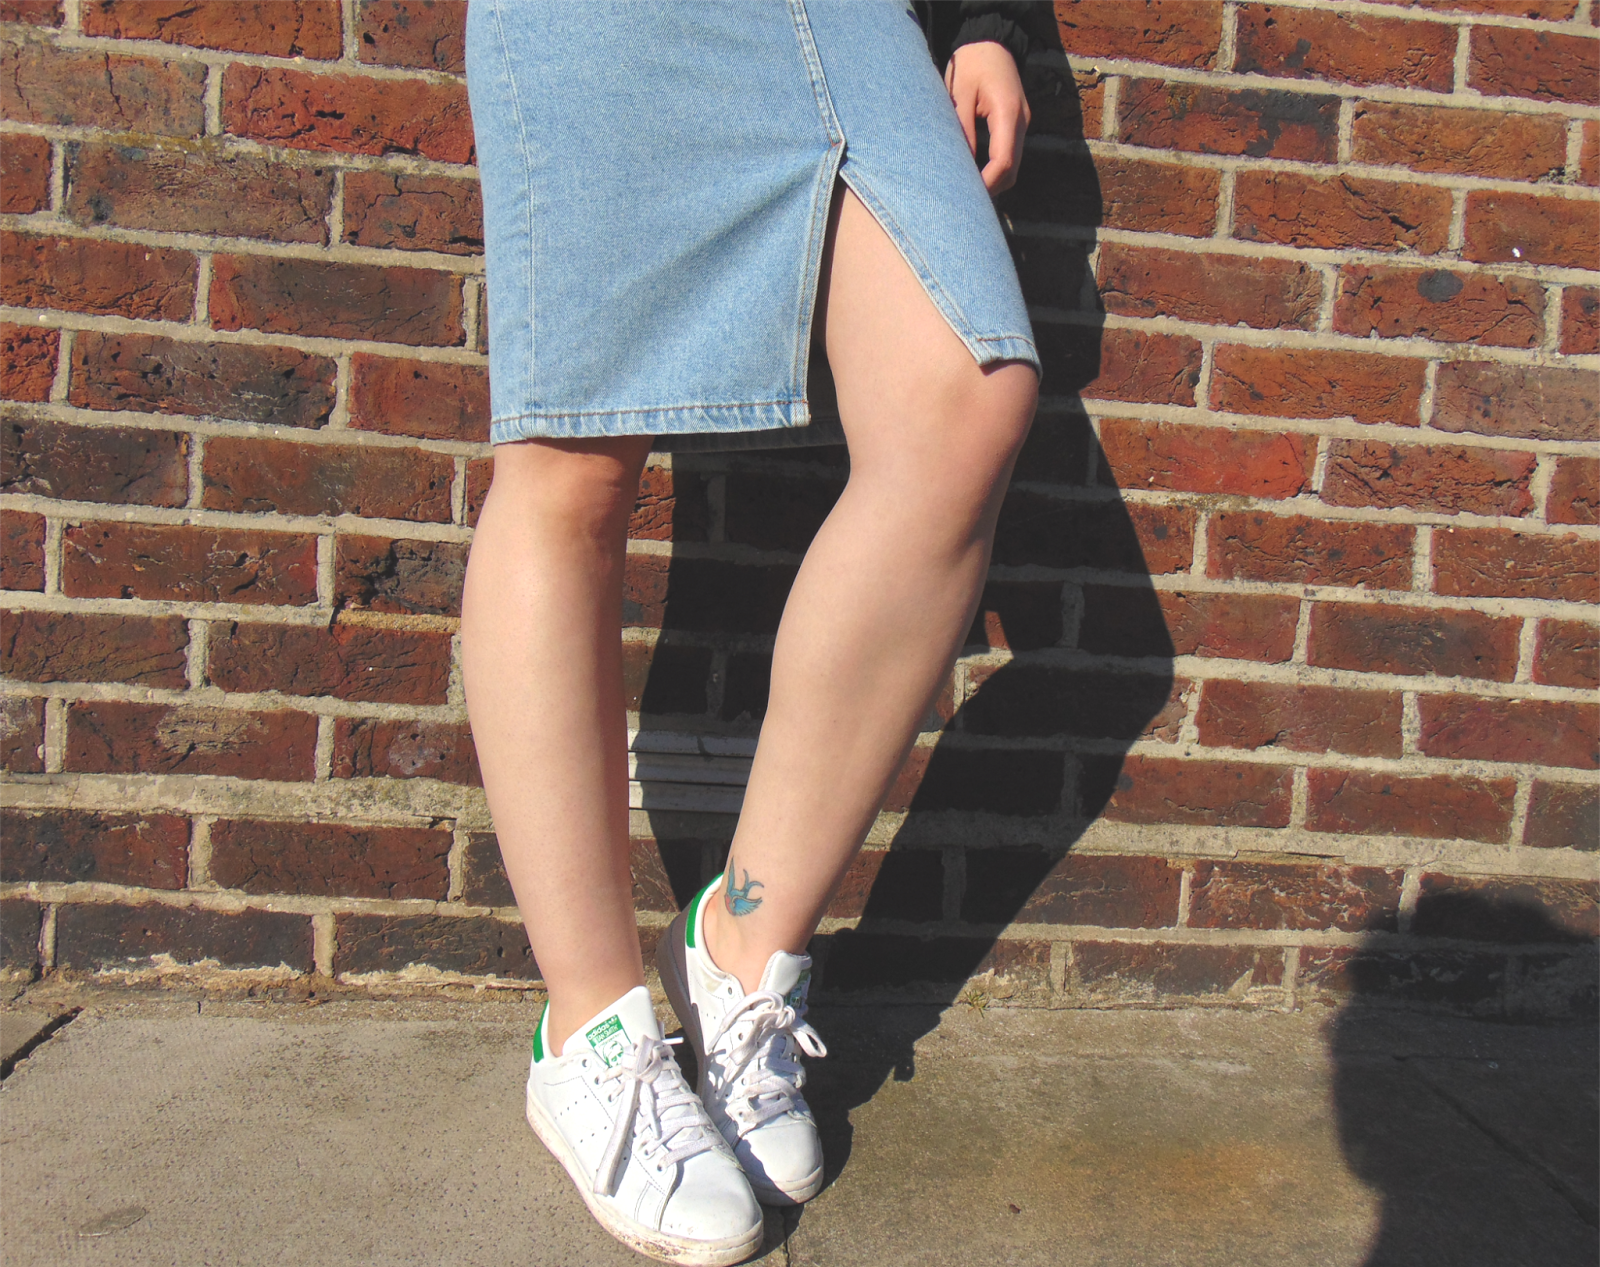 denim skirt, denim midi skirt, denim pencil skirt, stan smiths, lace up top, lace up body, spring outfit, sport luxe, round reflective sunglasses, bomber jacket, alternative fashion style inspiration